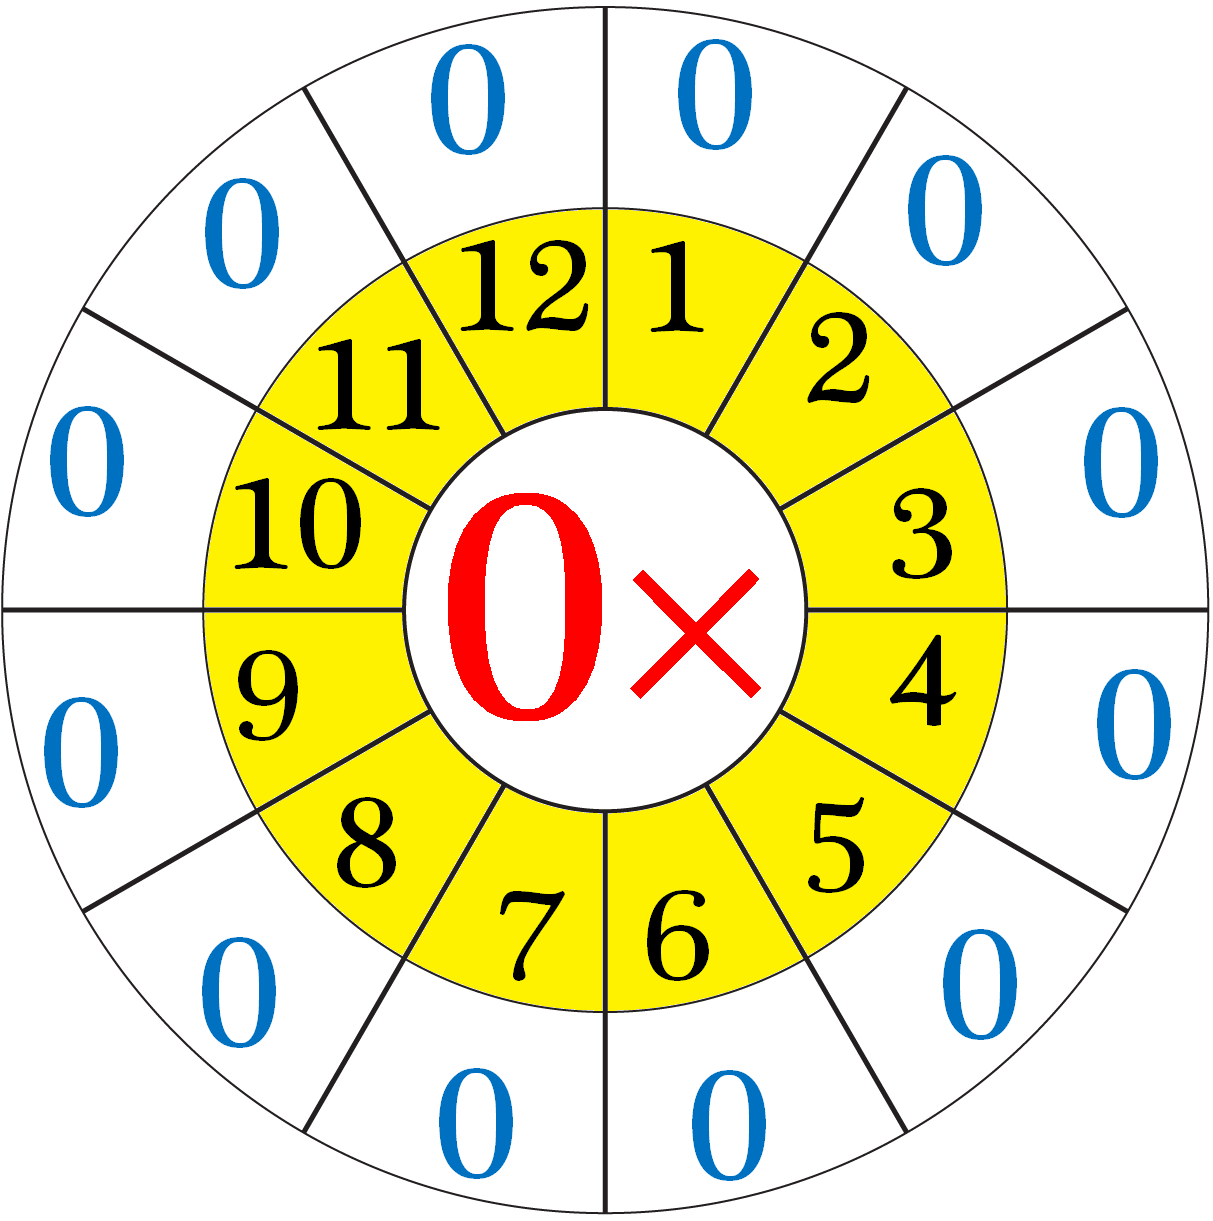 Multiplication Table of Zero